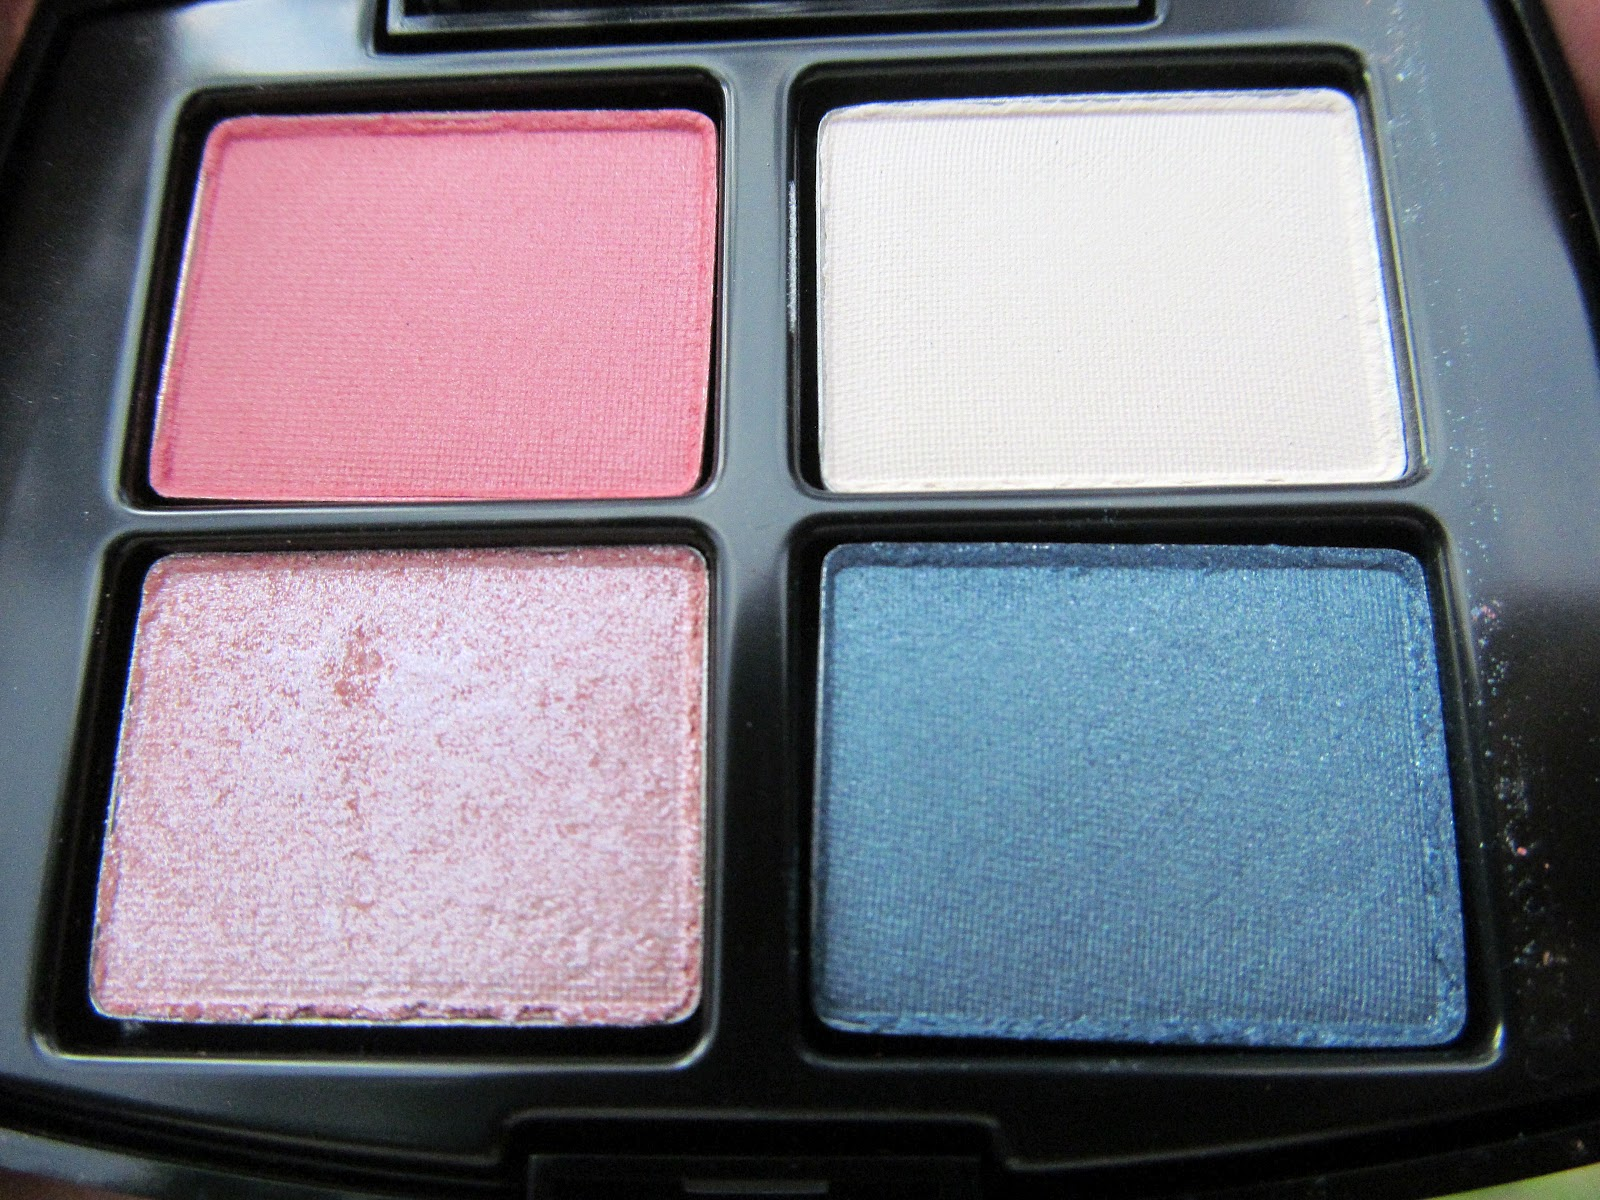 bon vivant beauty  macy u0026 39 s lancome gift with purchase review  swatches  u0026 fotd